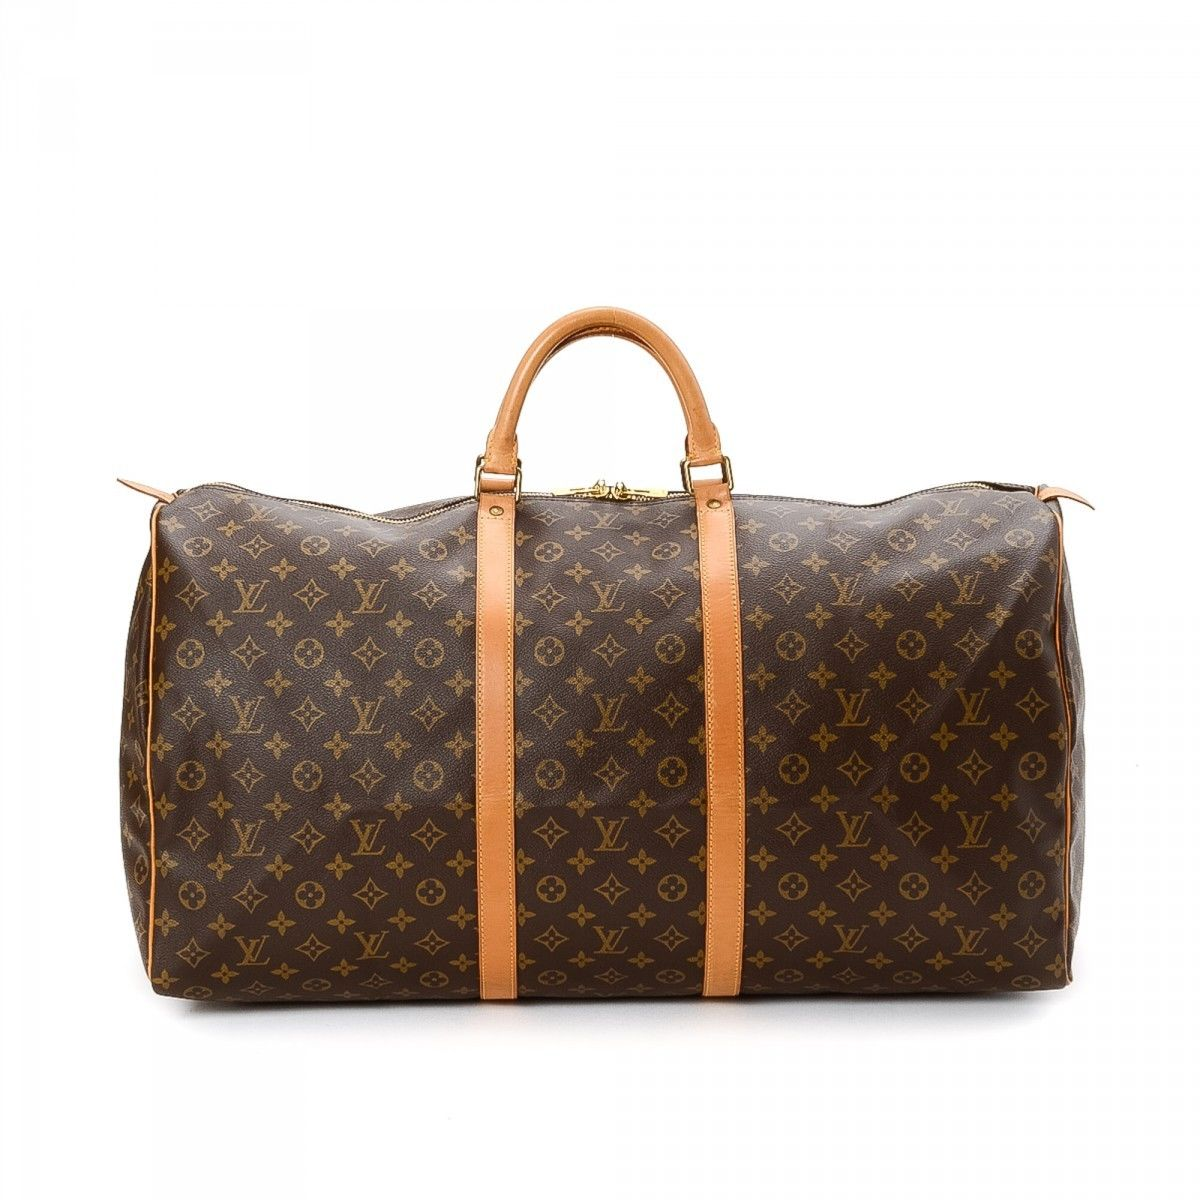 0510b6329197 Louis Vuitton Keepall 60. LXRandCo guarantees this is an authentic vintage  Louis Vuitton Keepall 60 travel bag.